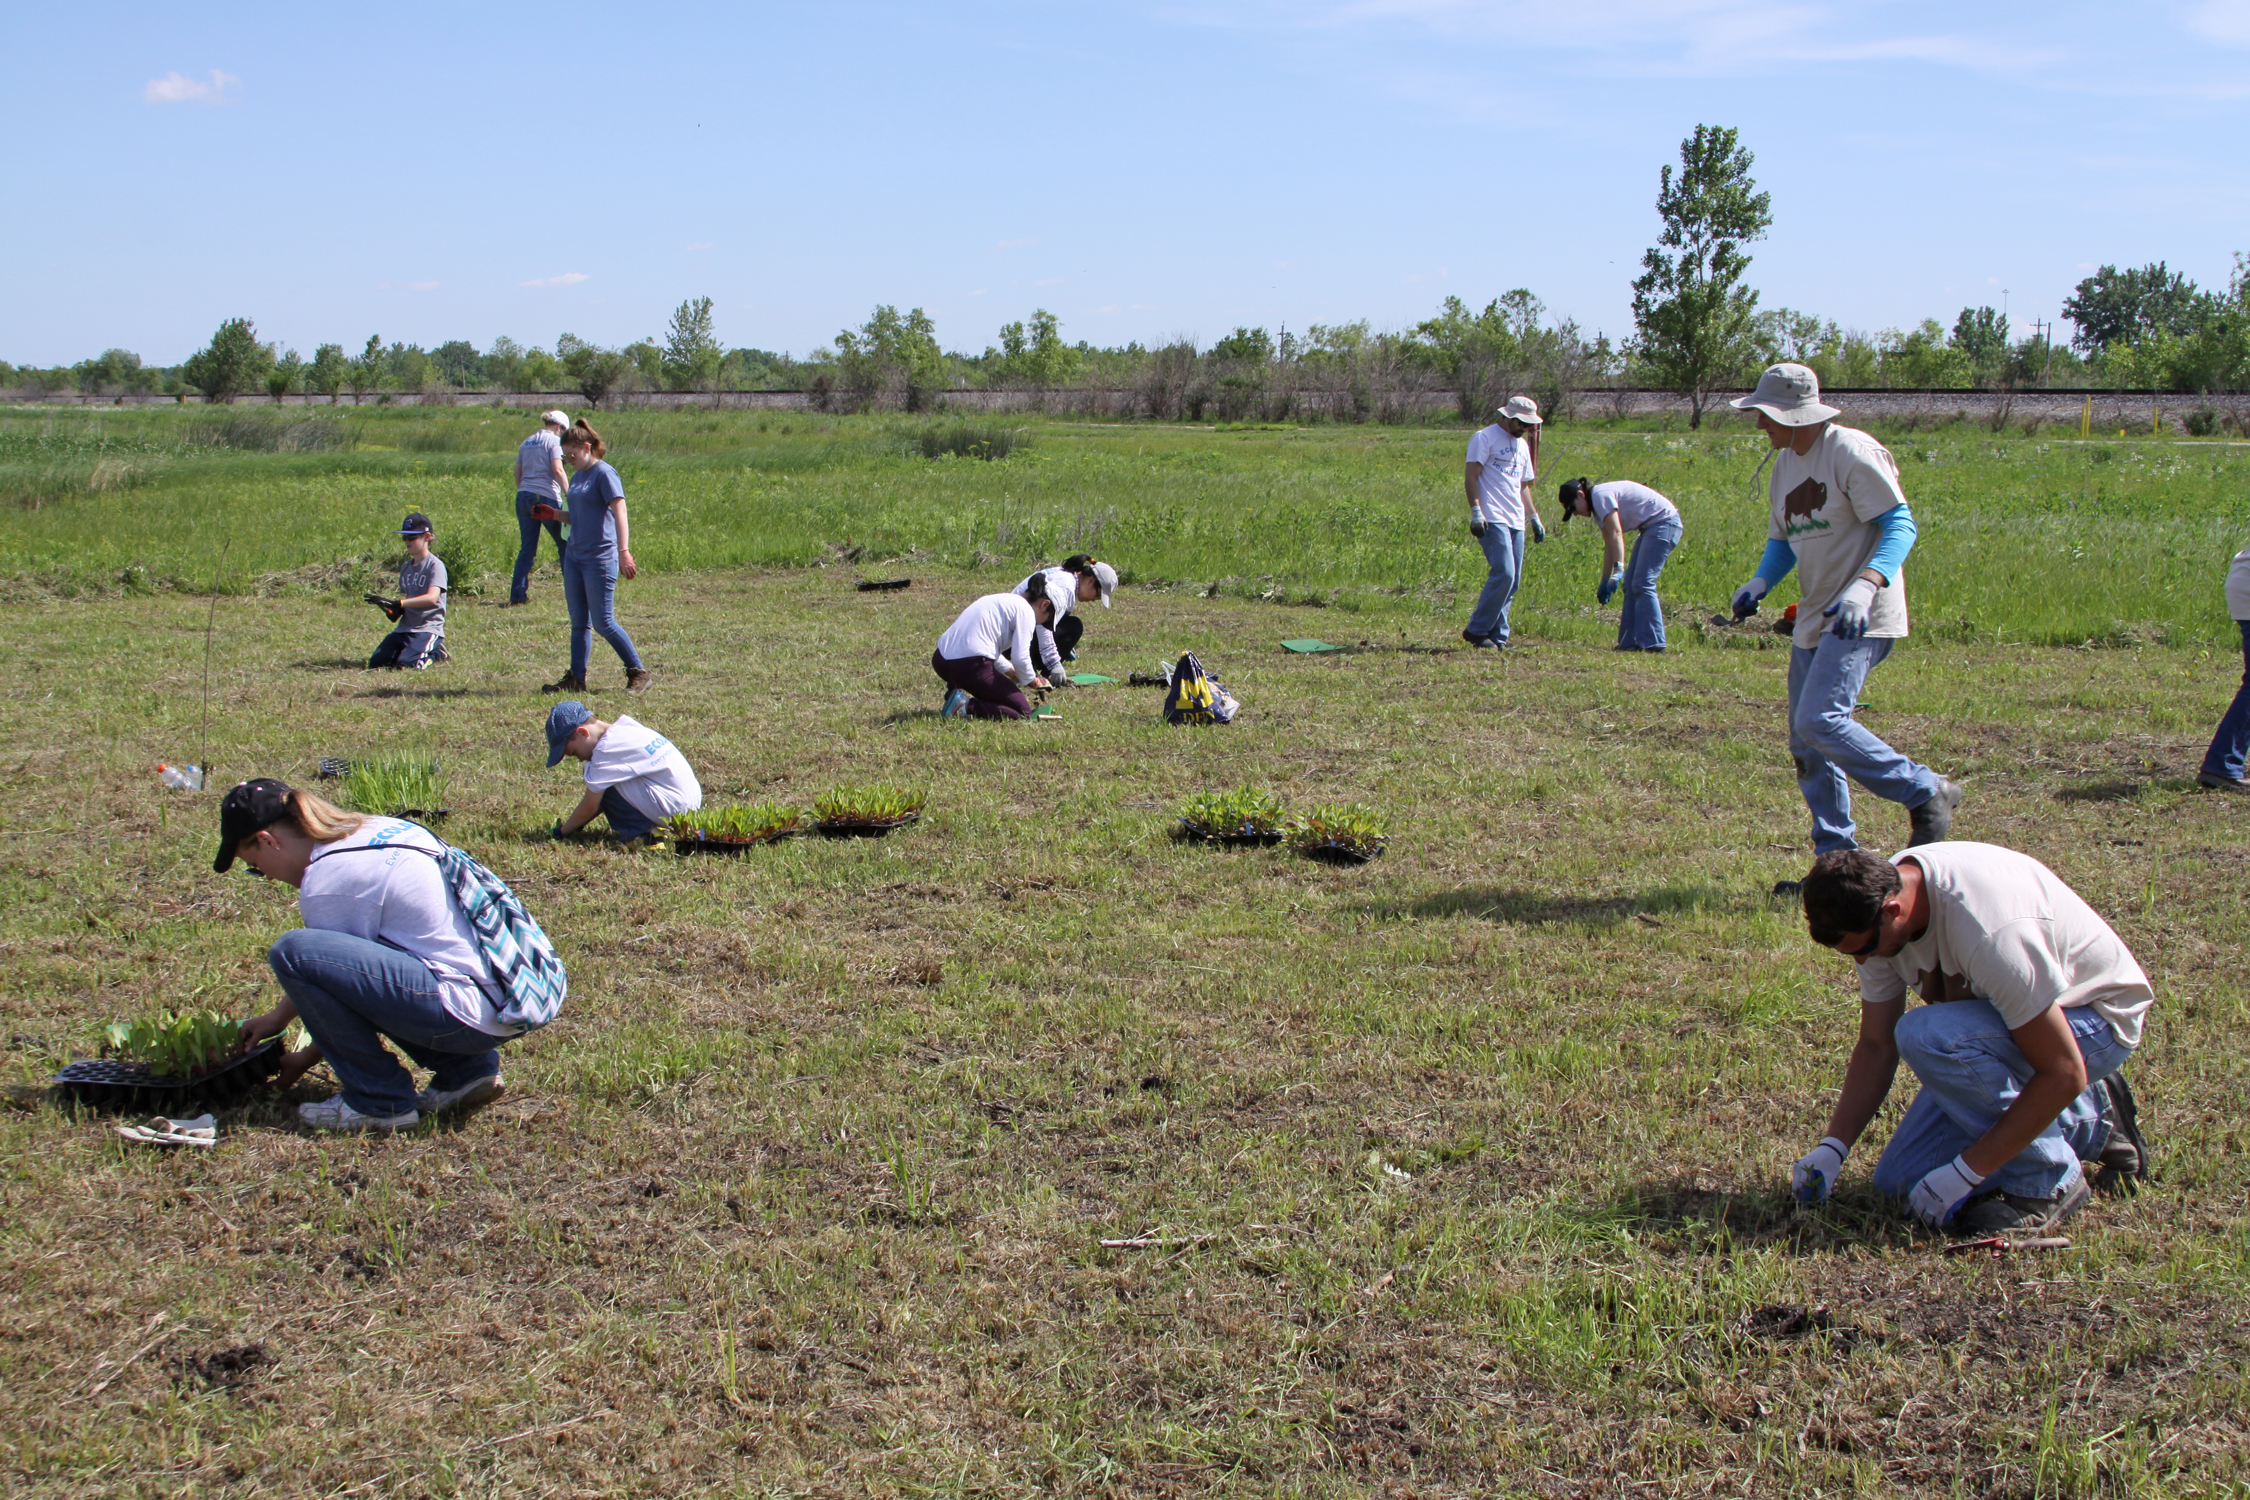 In all, 45 employees from four companies volunteered to help plant native seedlings at TWI's Lobelia Meadows project site during the annual Corporate Volunteer Day held immediately after the recognition event.